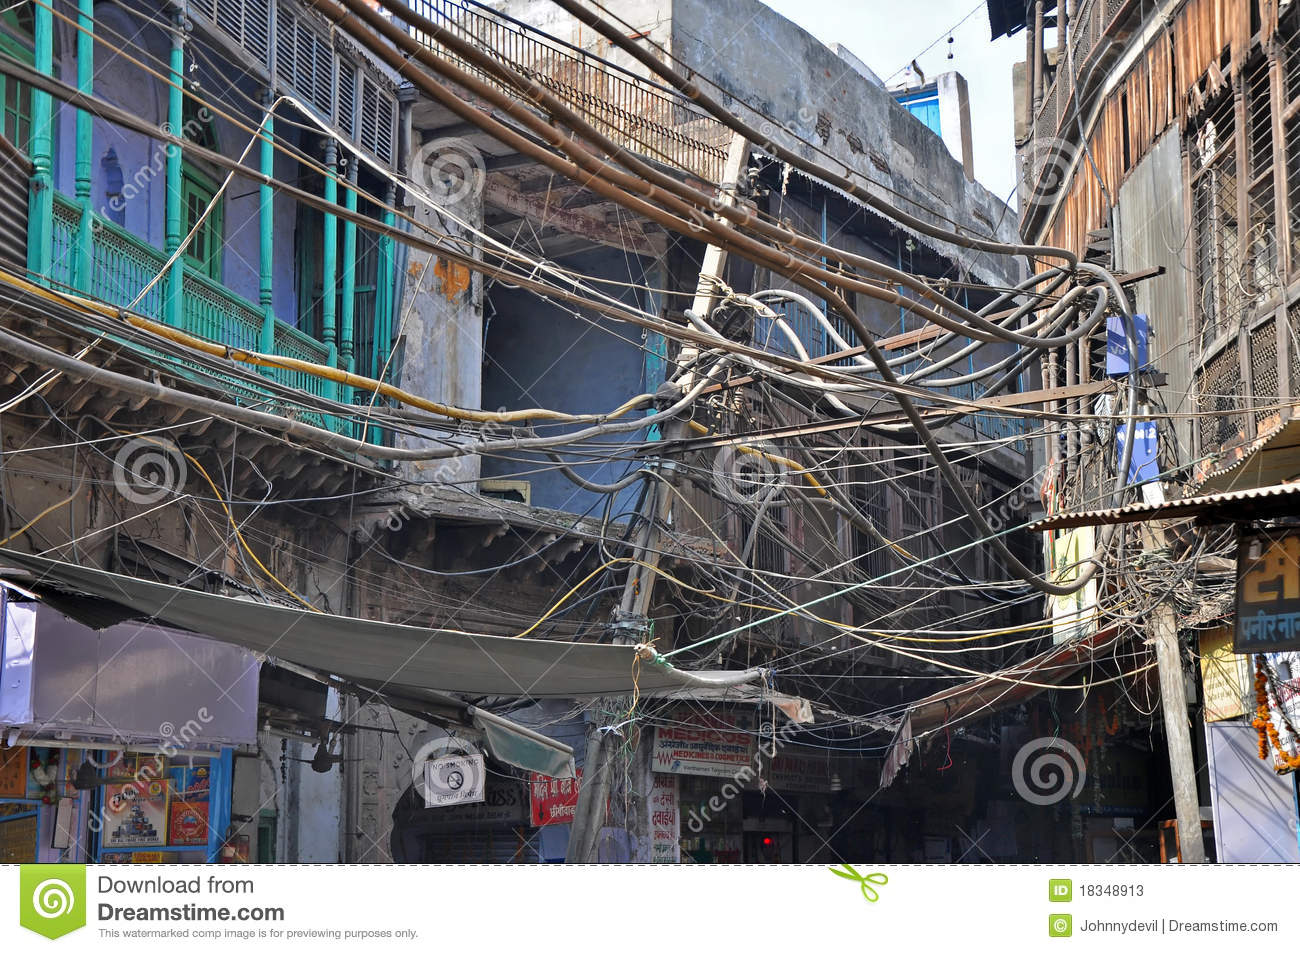 electrical wiring in india editorial stock photo image of chaos rh dreamstime com India Phone Lines India Power Pole